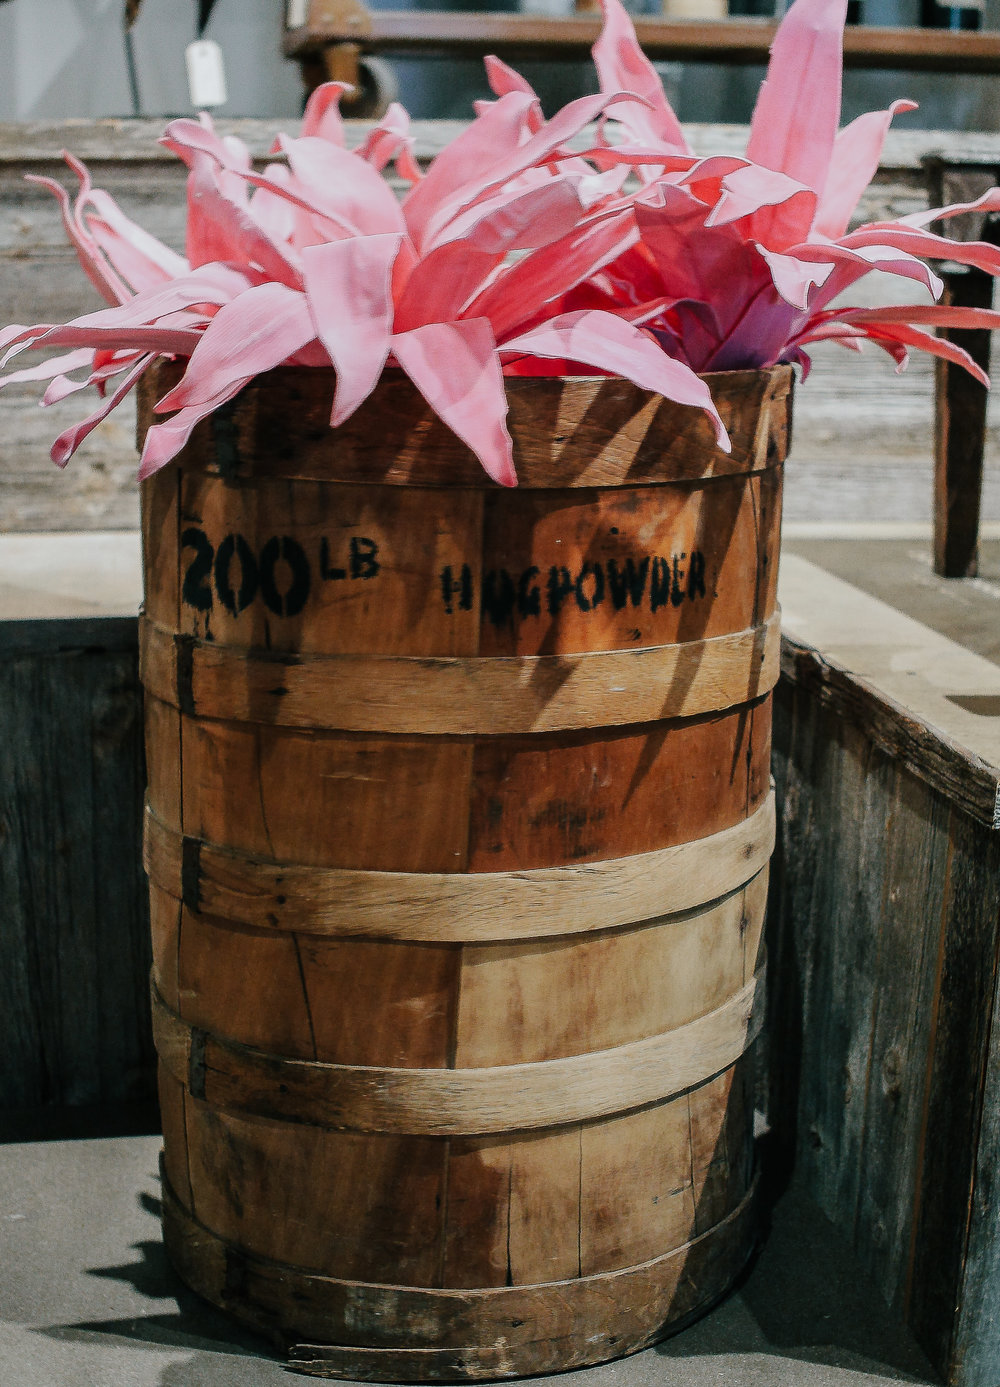 Wooden Hog POwder Barrel-2.jpg